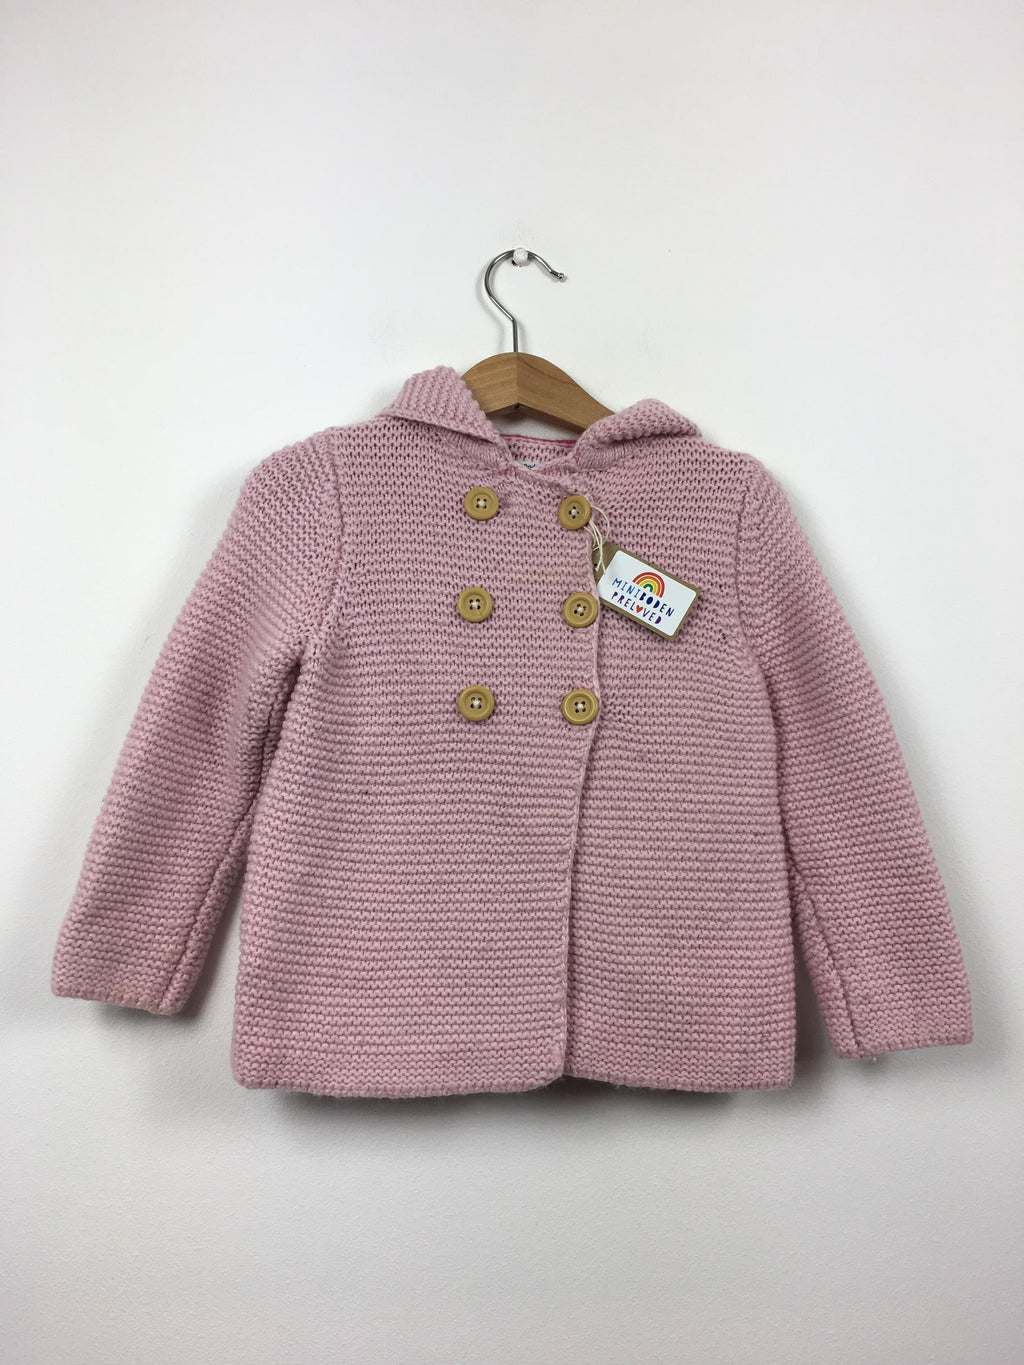 Knitted Rabbit Hooded Cardigan (18-24 Months)